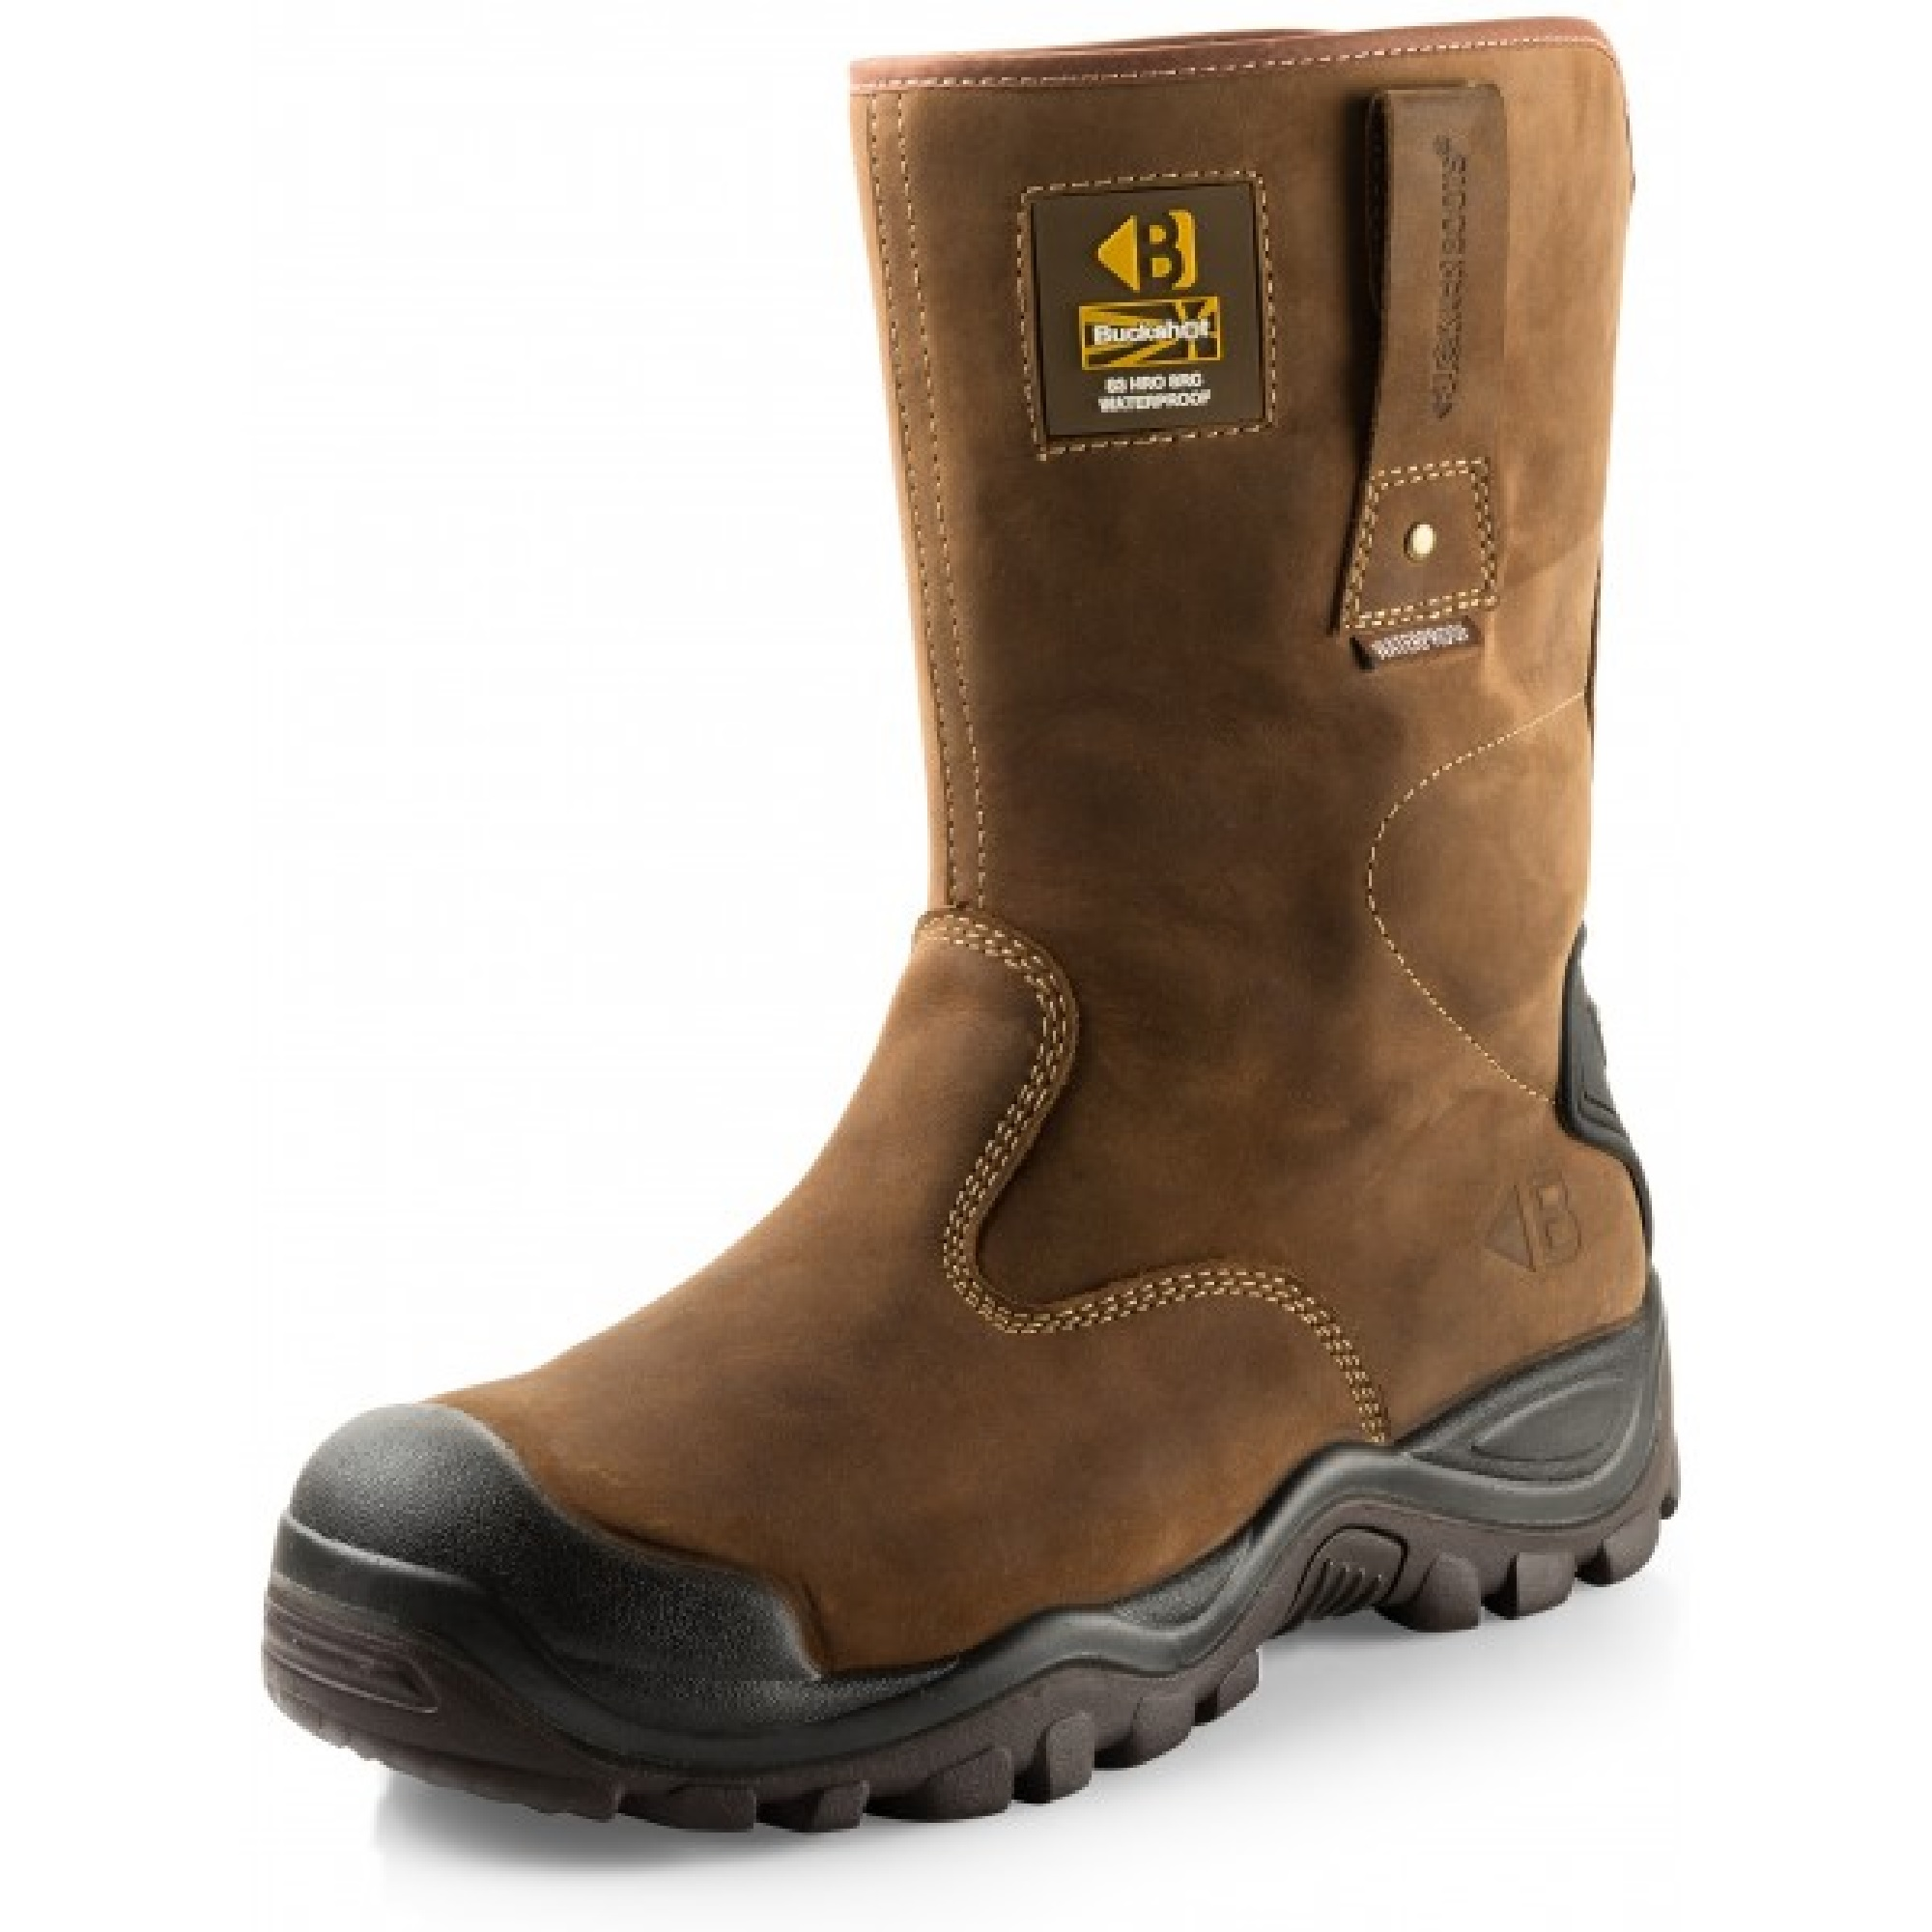 Brown leather Buckler BSH010BR safety rigger boots with Buckler logo on top left side and contrasting light brown stitching